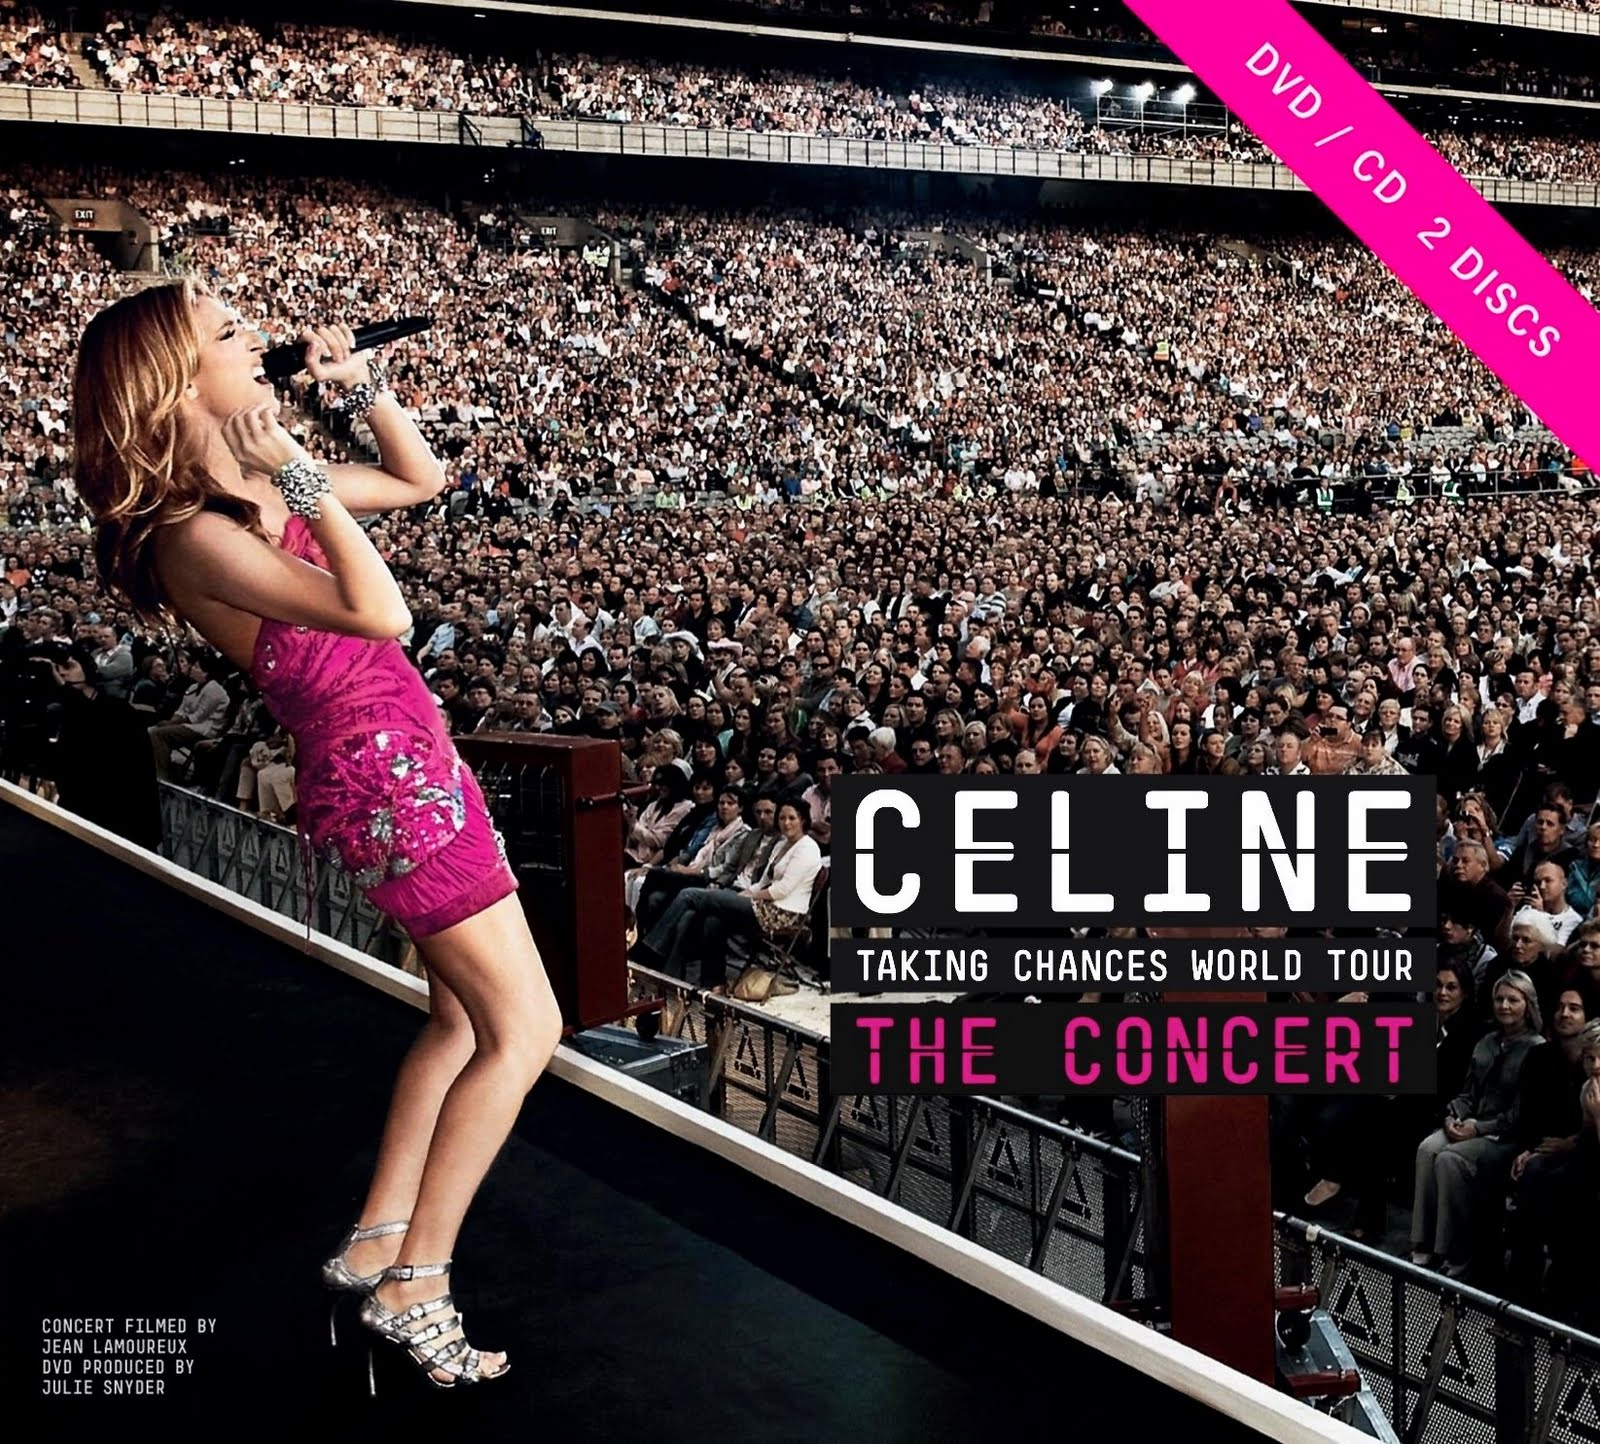 Celine Dion - Taking Chances World Tour